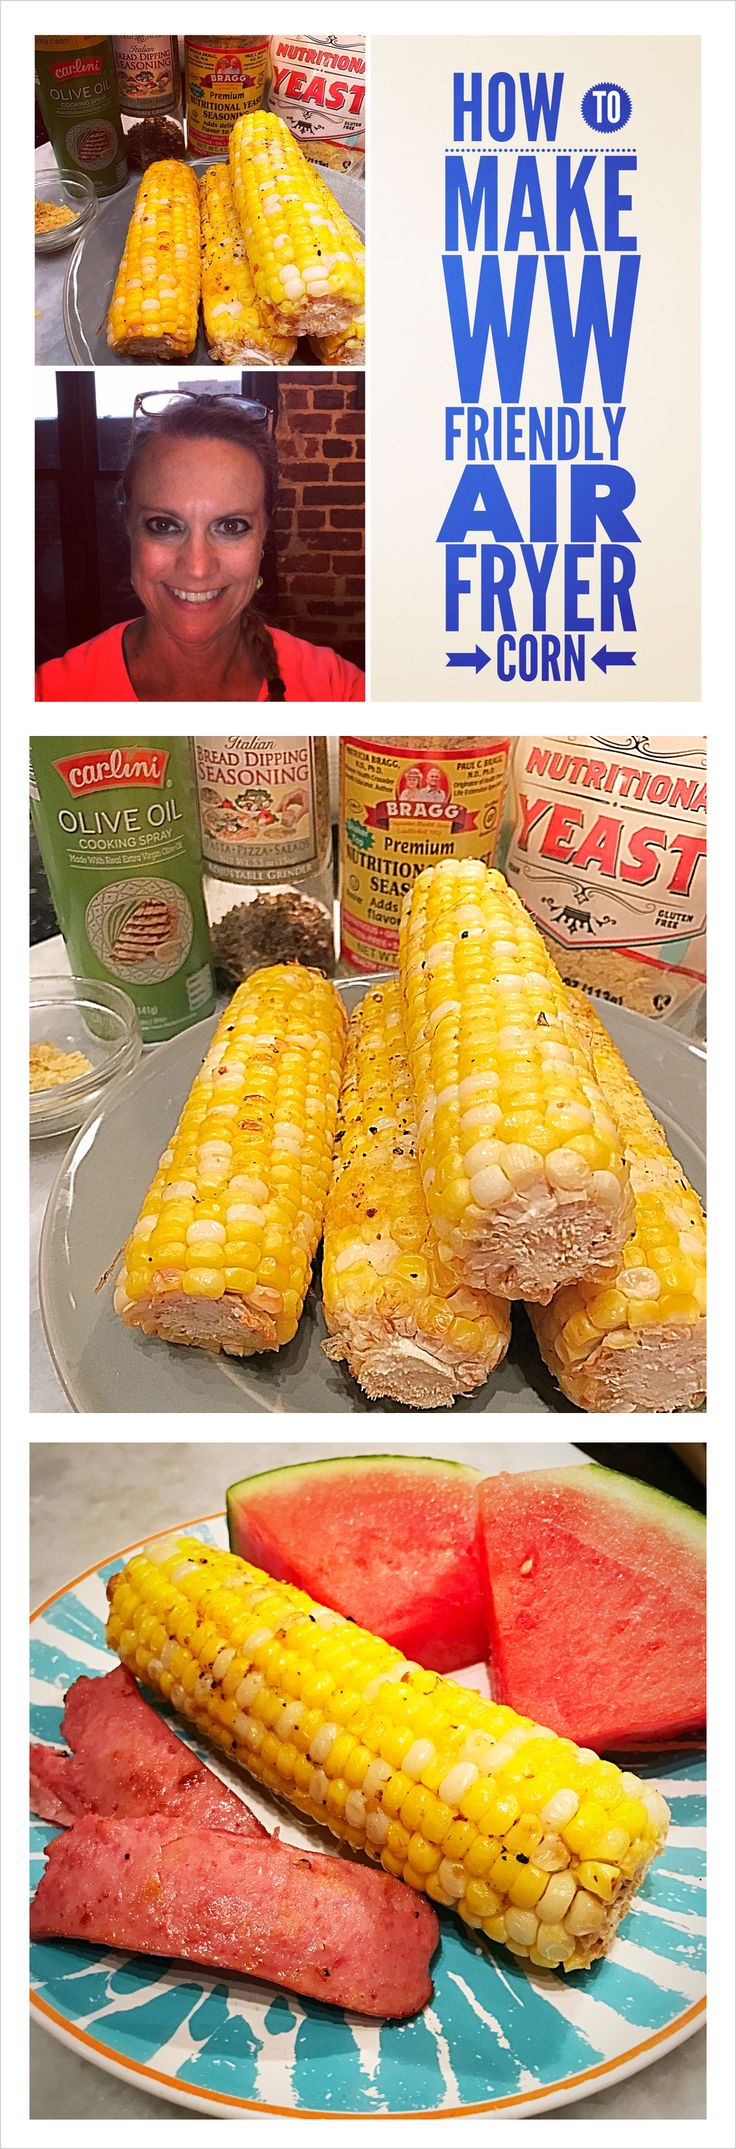 Learn how I make Air Fryer Corn in my Power Air Fryer XL.  Super easy.  8 minutes.  Only 4 Smart Points! View the video here: https://youtu.be/uA0taT8W3J0  Remember to Like, Share, Comment & Subscribe so I can keep making these Weight Watchers friendly videos.  Thanks for watching and for more information and recipes visit my blog: www.ifyouhaveanegg.com ****************